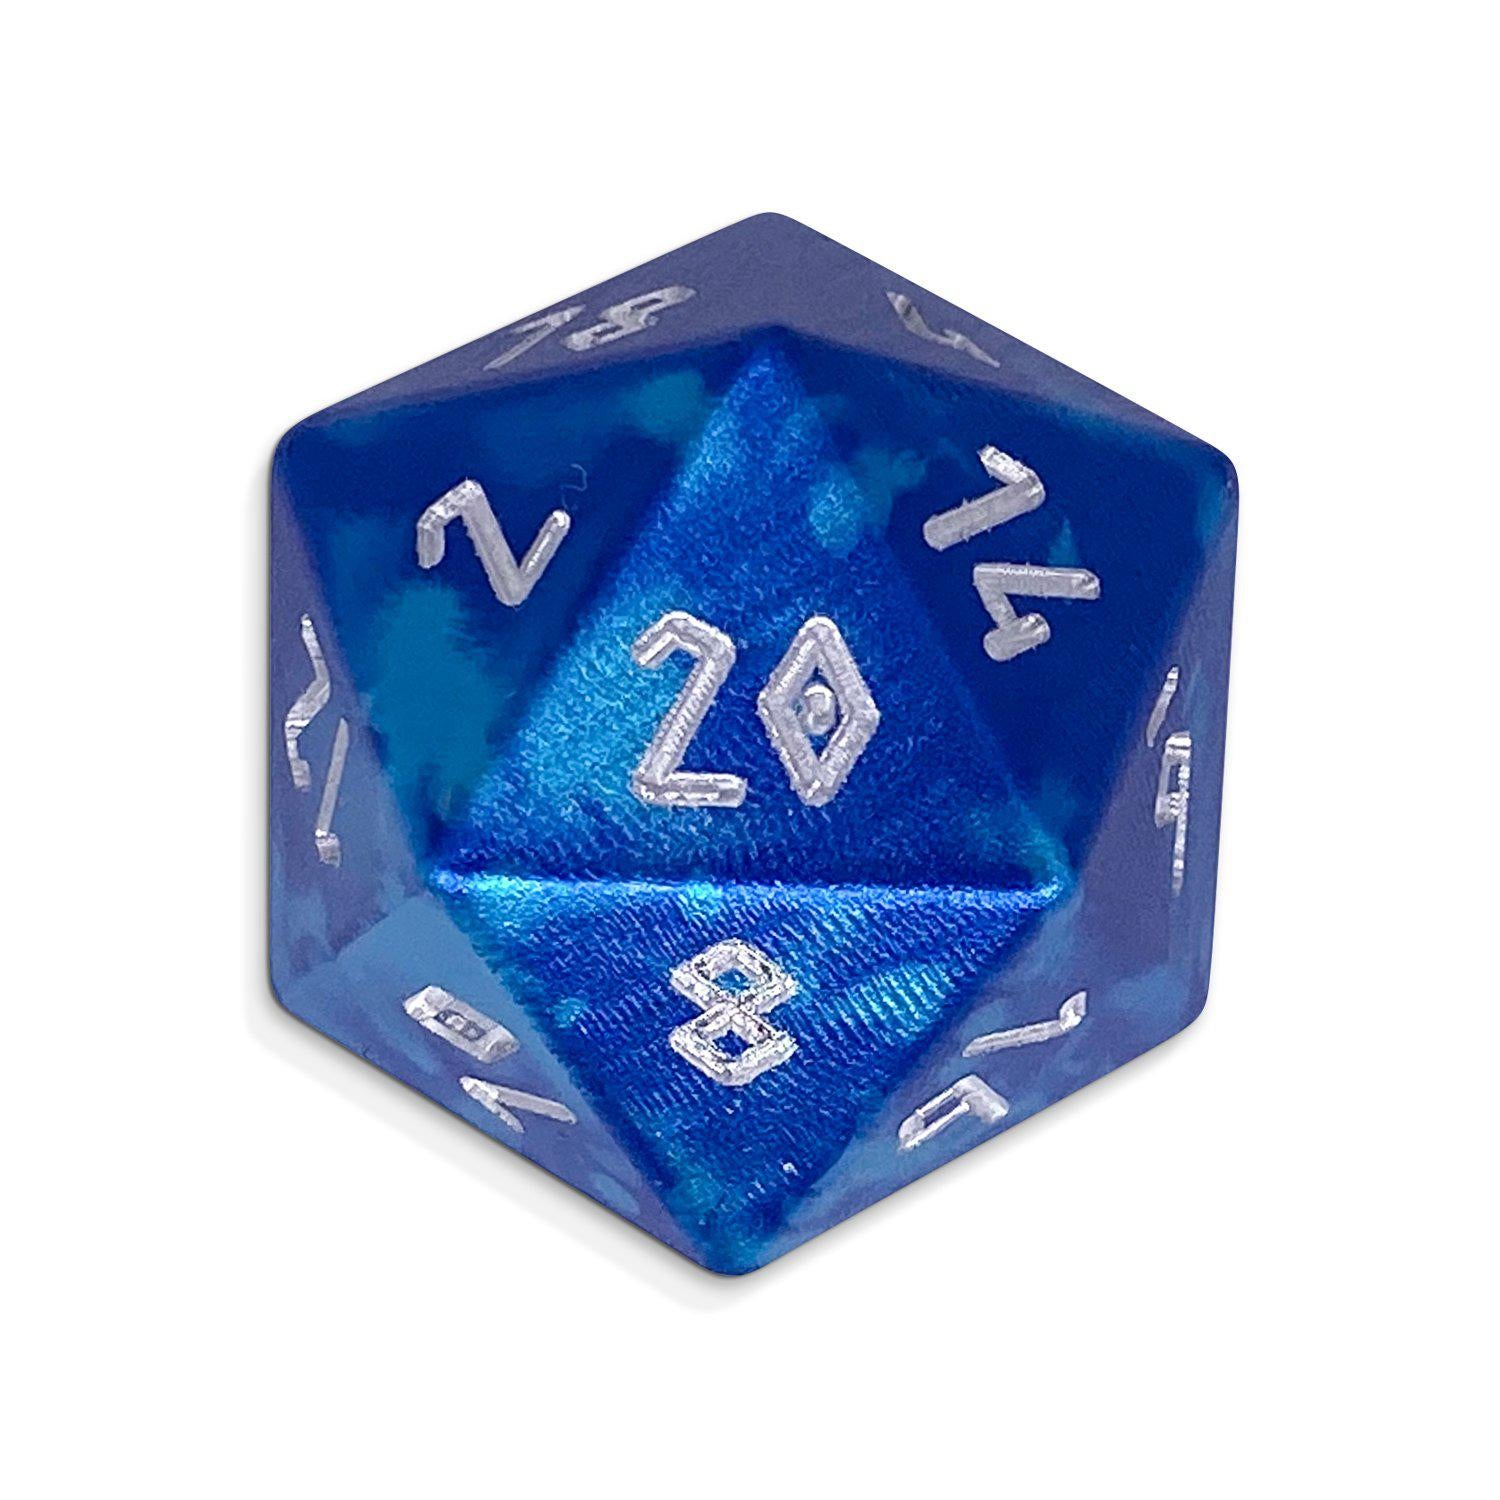 Single Wondrous Dice® D20 in Mystic Wave by Norse Foundry® 6063 Aircraft Grade Aluminum